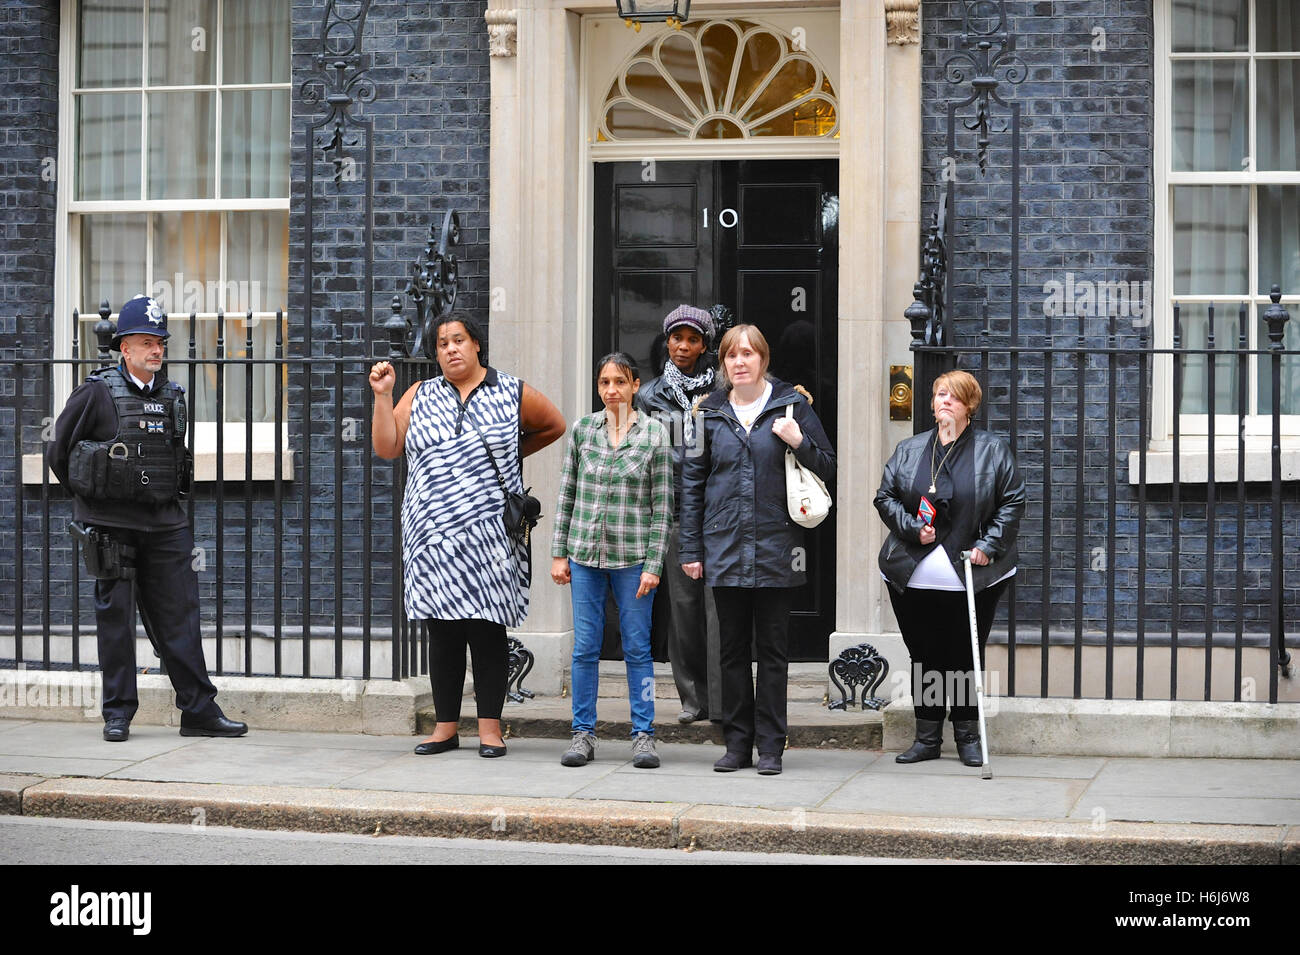 London, UK. 29th October, 2016. United Friends and Family (UFFC) campaign members after handing in a letter to Downing - Stock Image